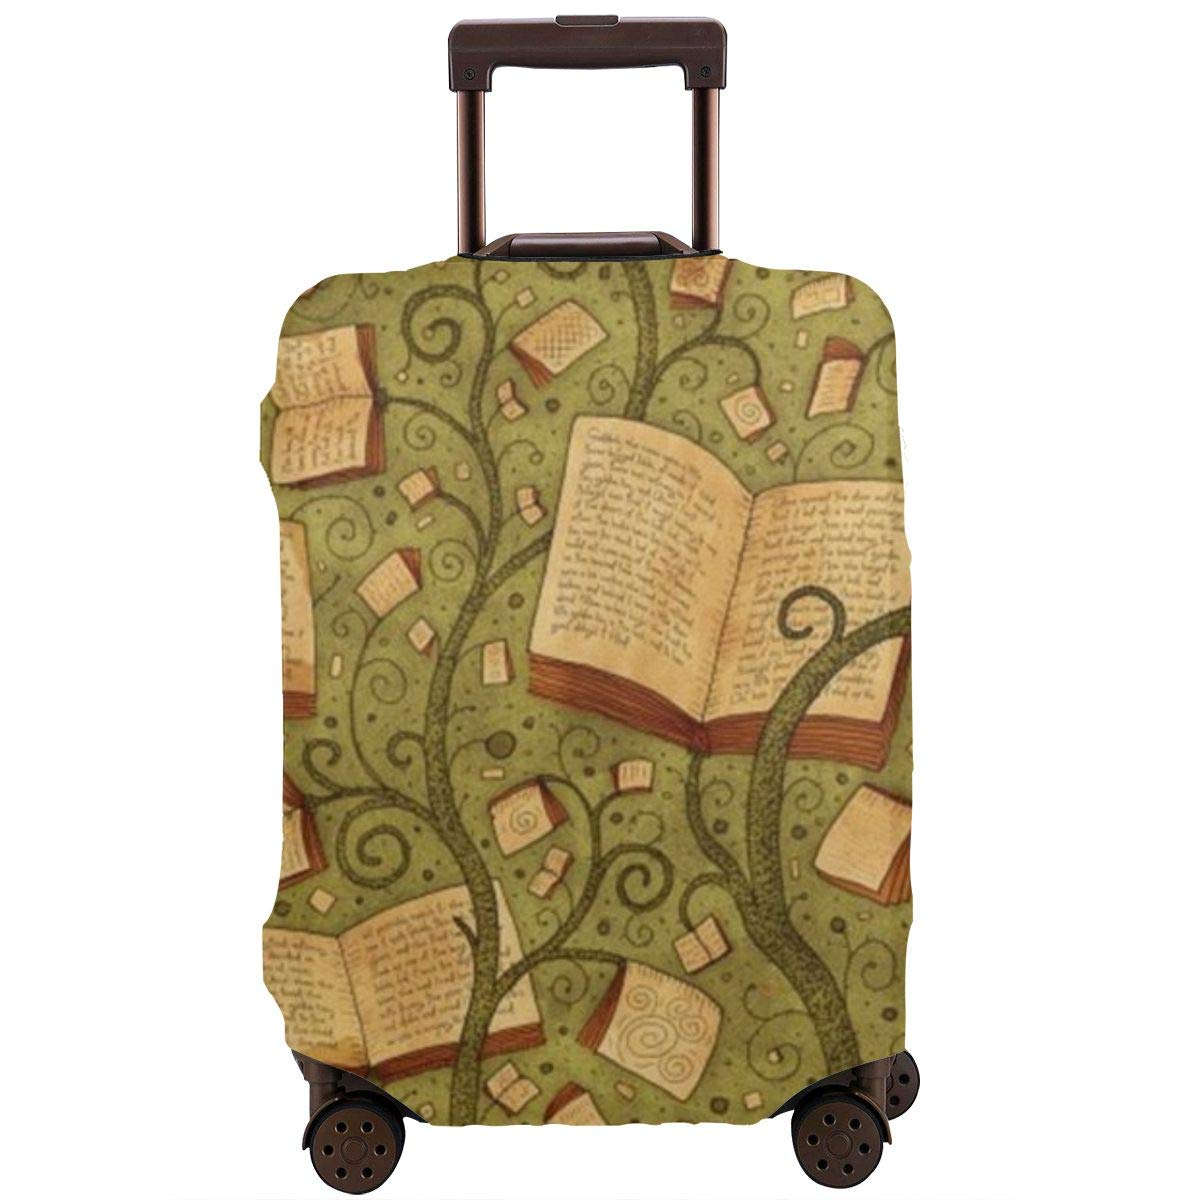 JHNDKJS Branch Plants Text Texture Travel Luggage Cover Baggage Suitcase Protector Fit for 12-18 Inch Luggage